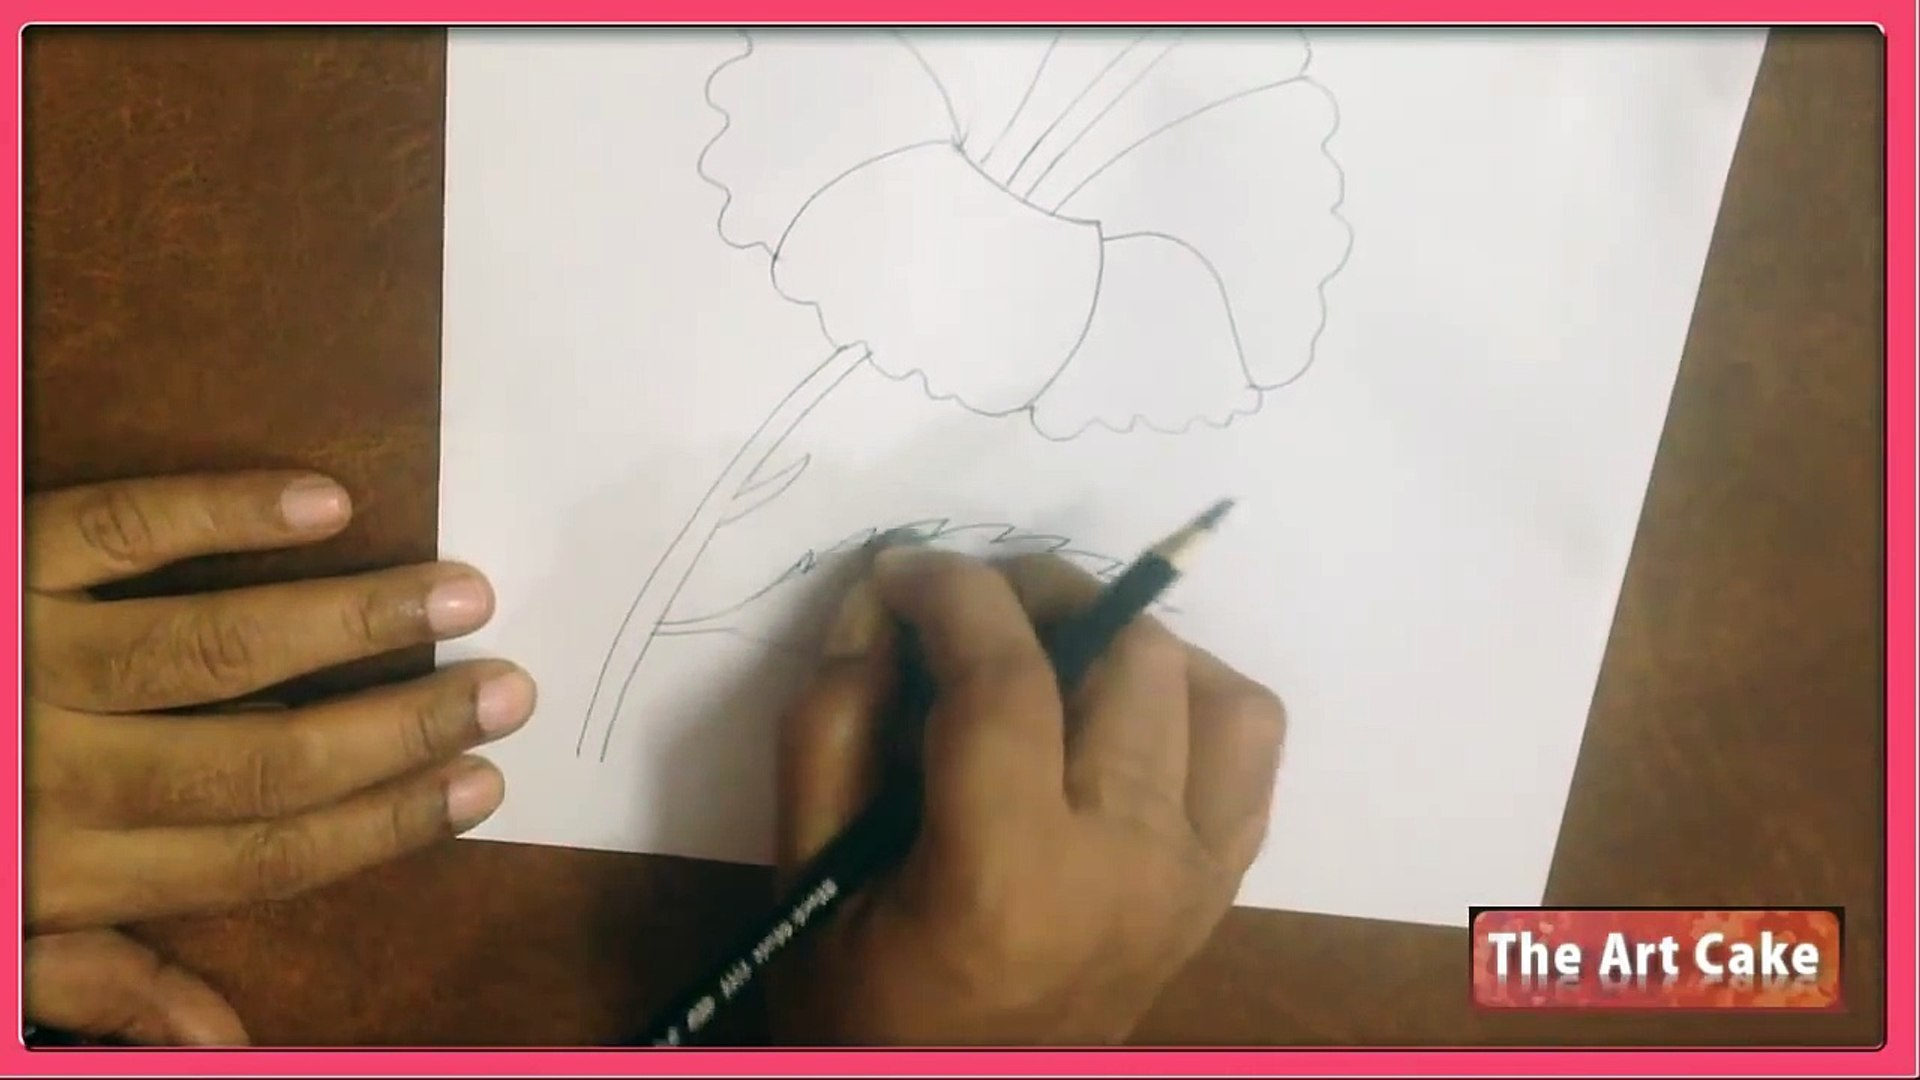 Hibiscus Flower Drawing How To Draw Hibiscus Flower Easy Flower Drawing For Children Video Dailymotion